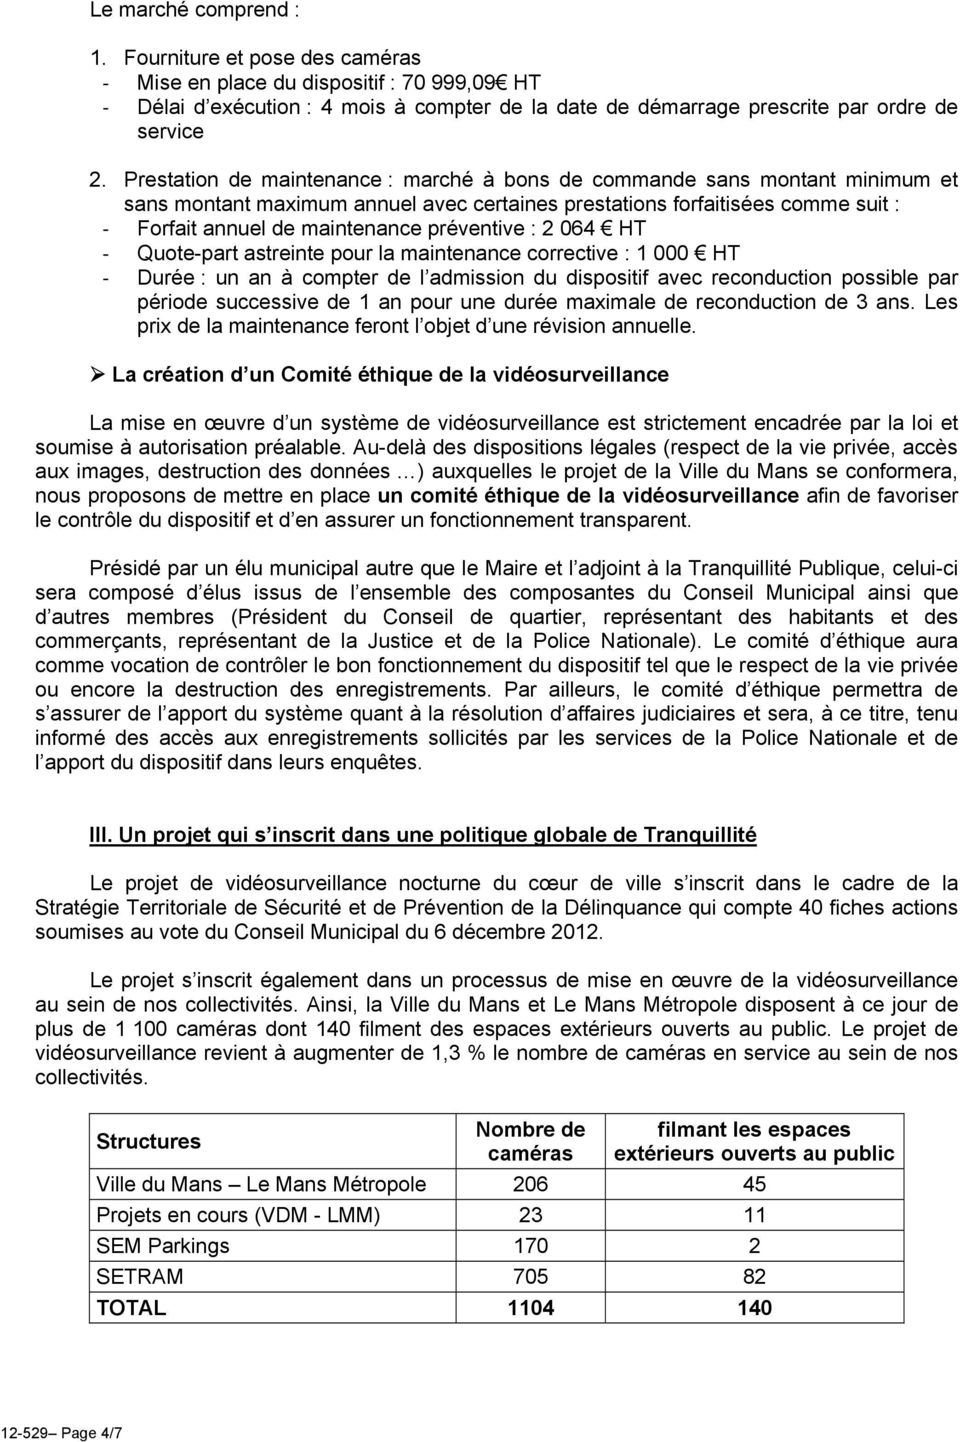 préventive : 2 064 HT - Quote-part astreinte pour la maintenance corrective : 1 000 HT - Durée : un an à compter de l admission du dispositif avec reconduction possible par période successive de 1 an